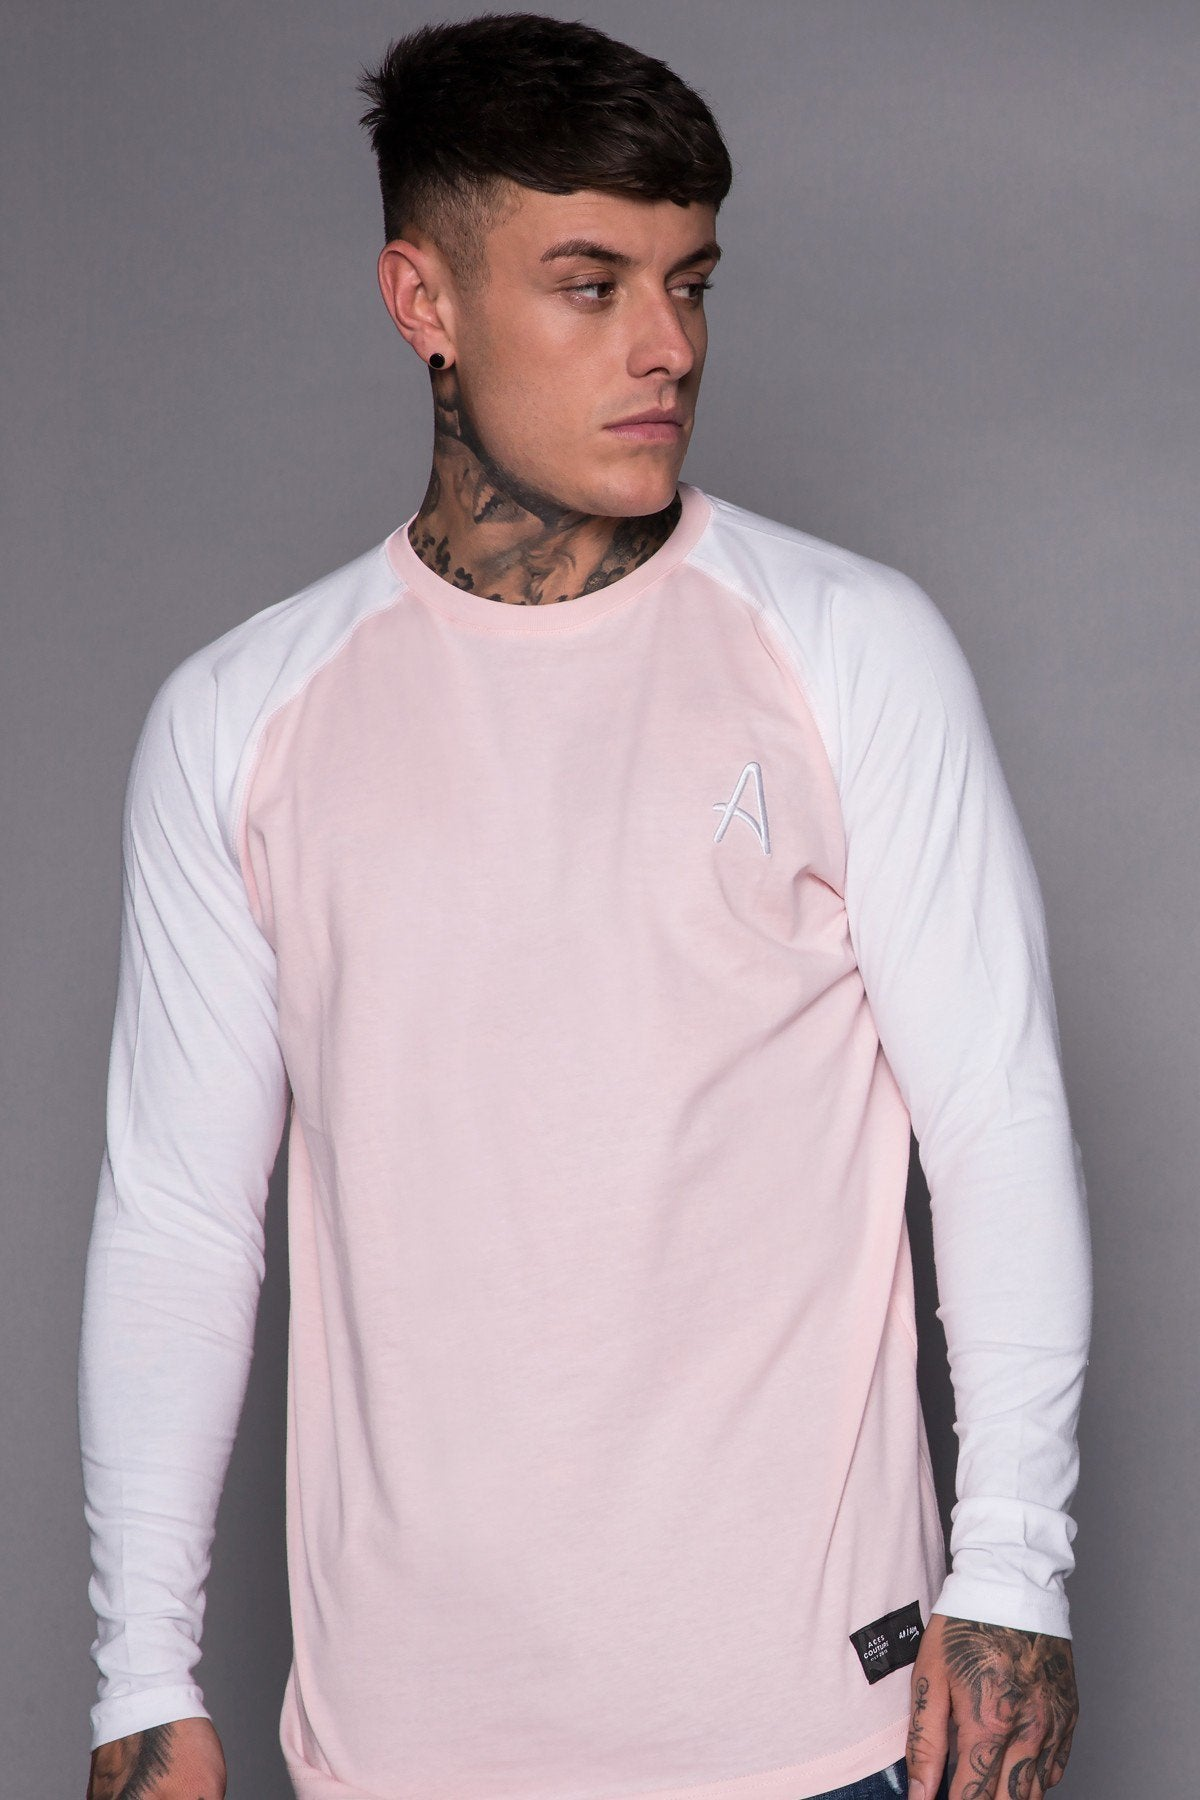 ACES COUTURE T-SHIRTS ACES COUTURE - L/S TEE (PINK / WHITE)